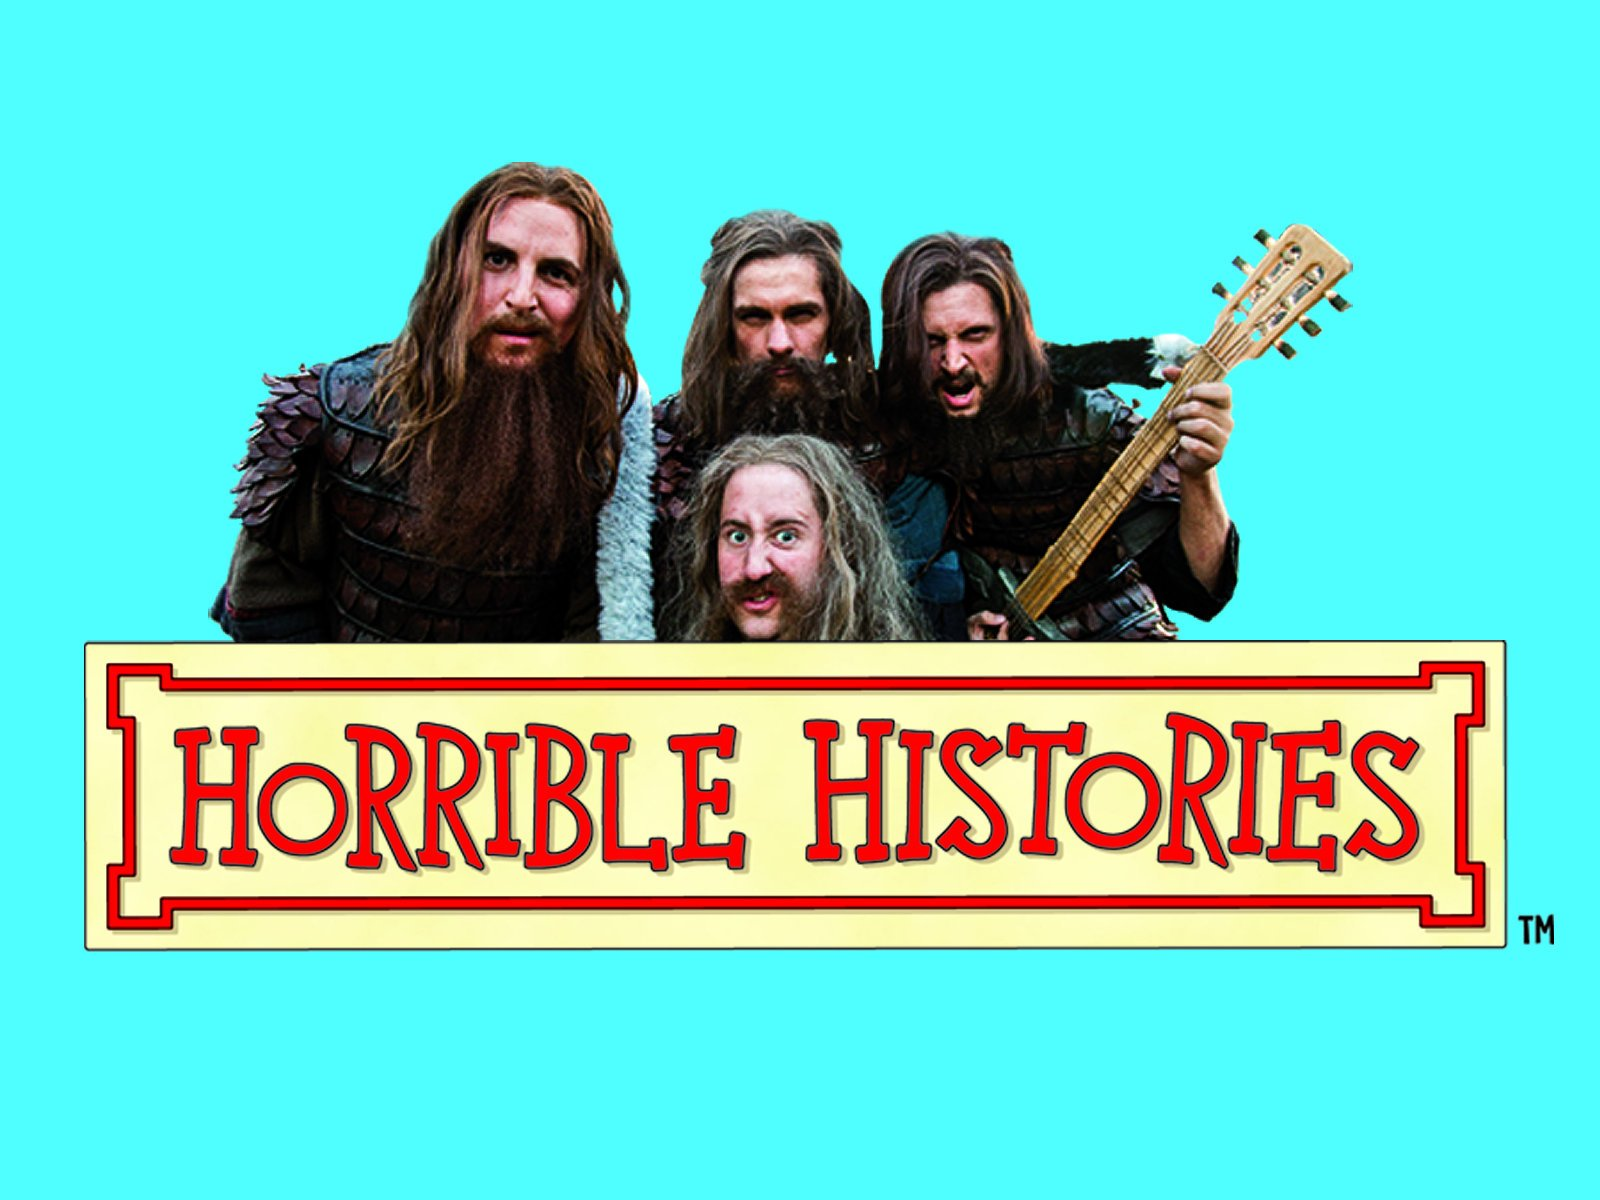 Horrible histories cleopatra dating services